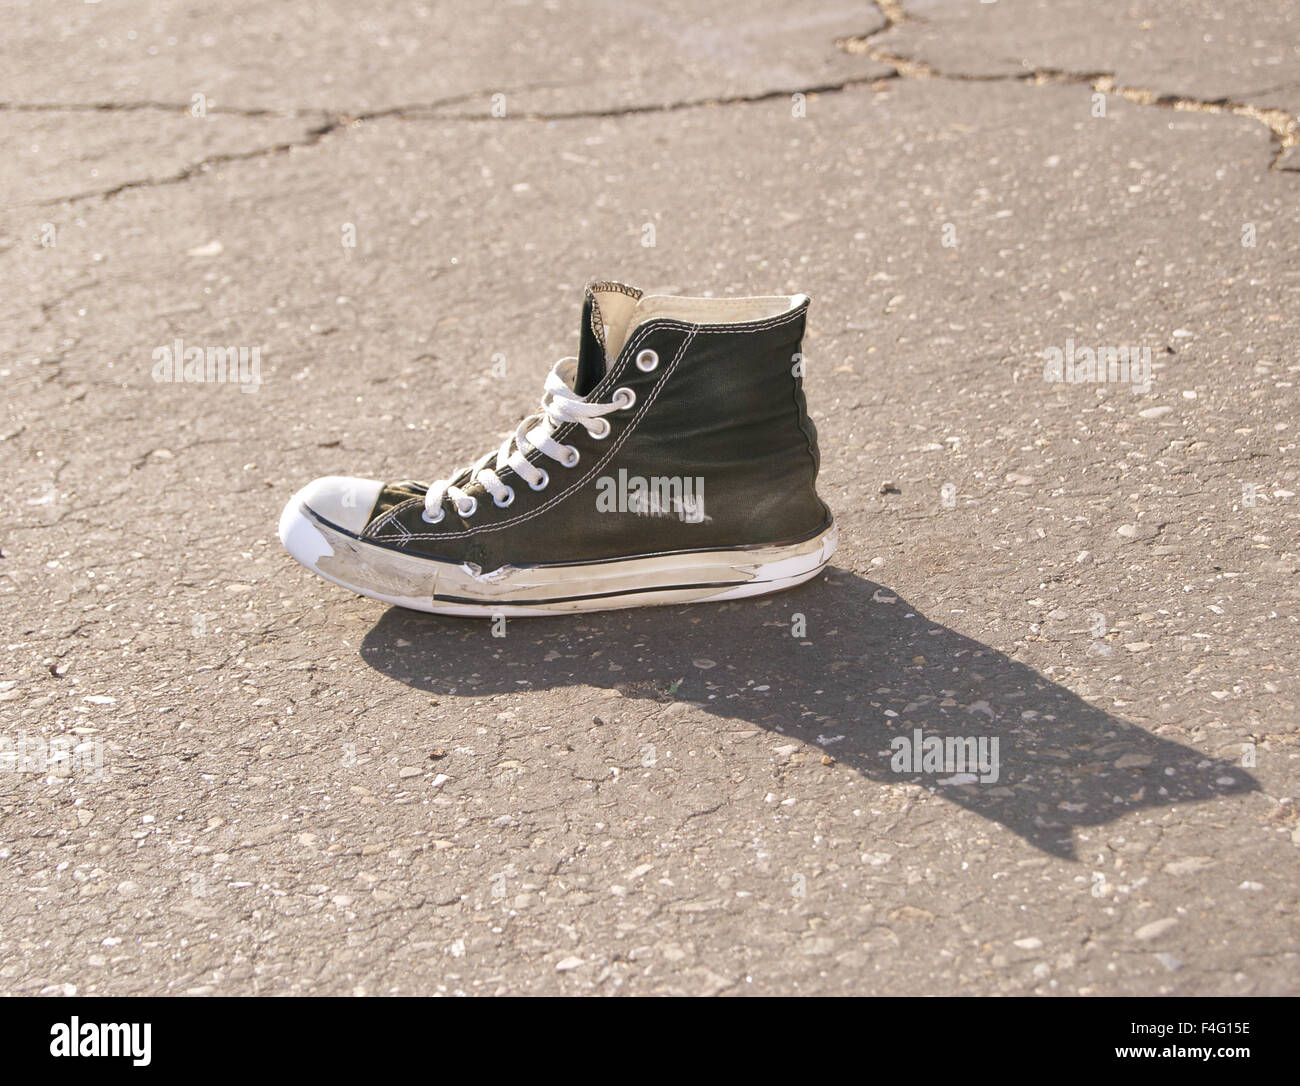 Worn out shoes on the concrete basketball court with setting sunlight and shadow. - Stock Image